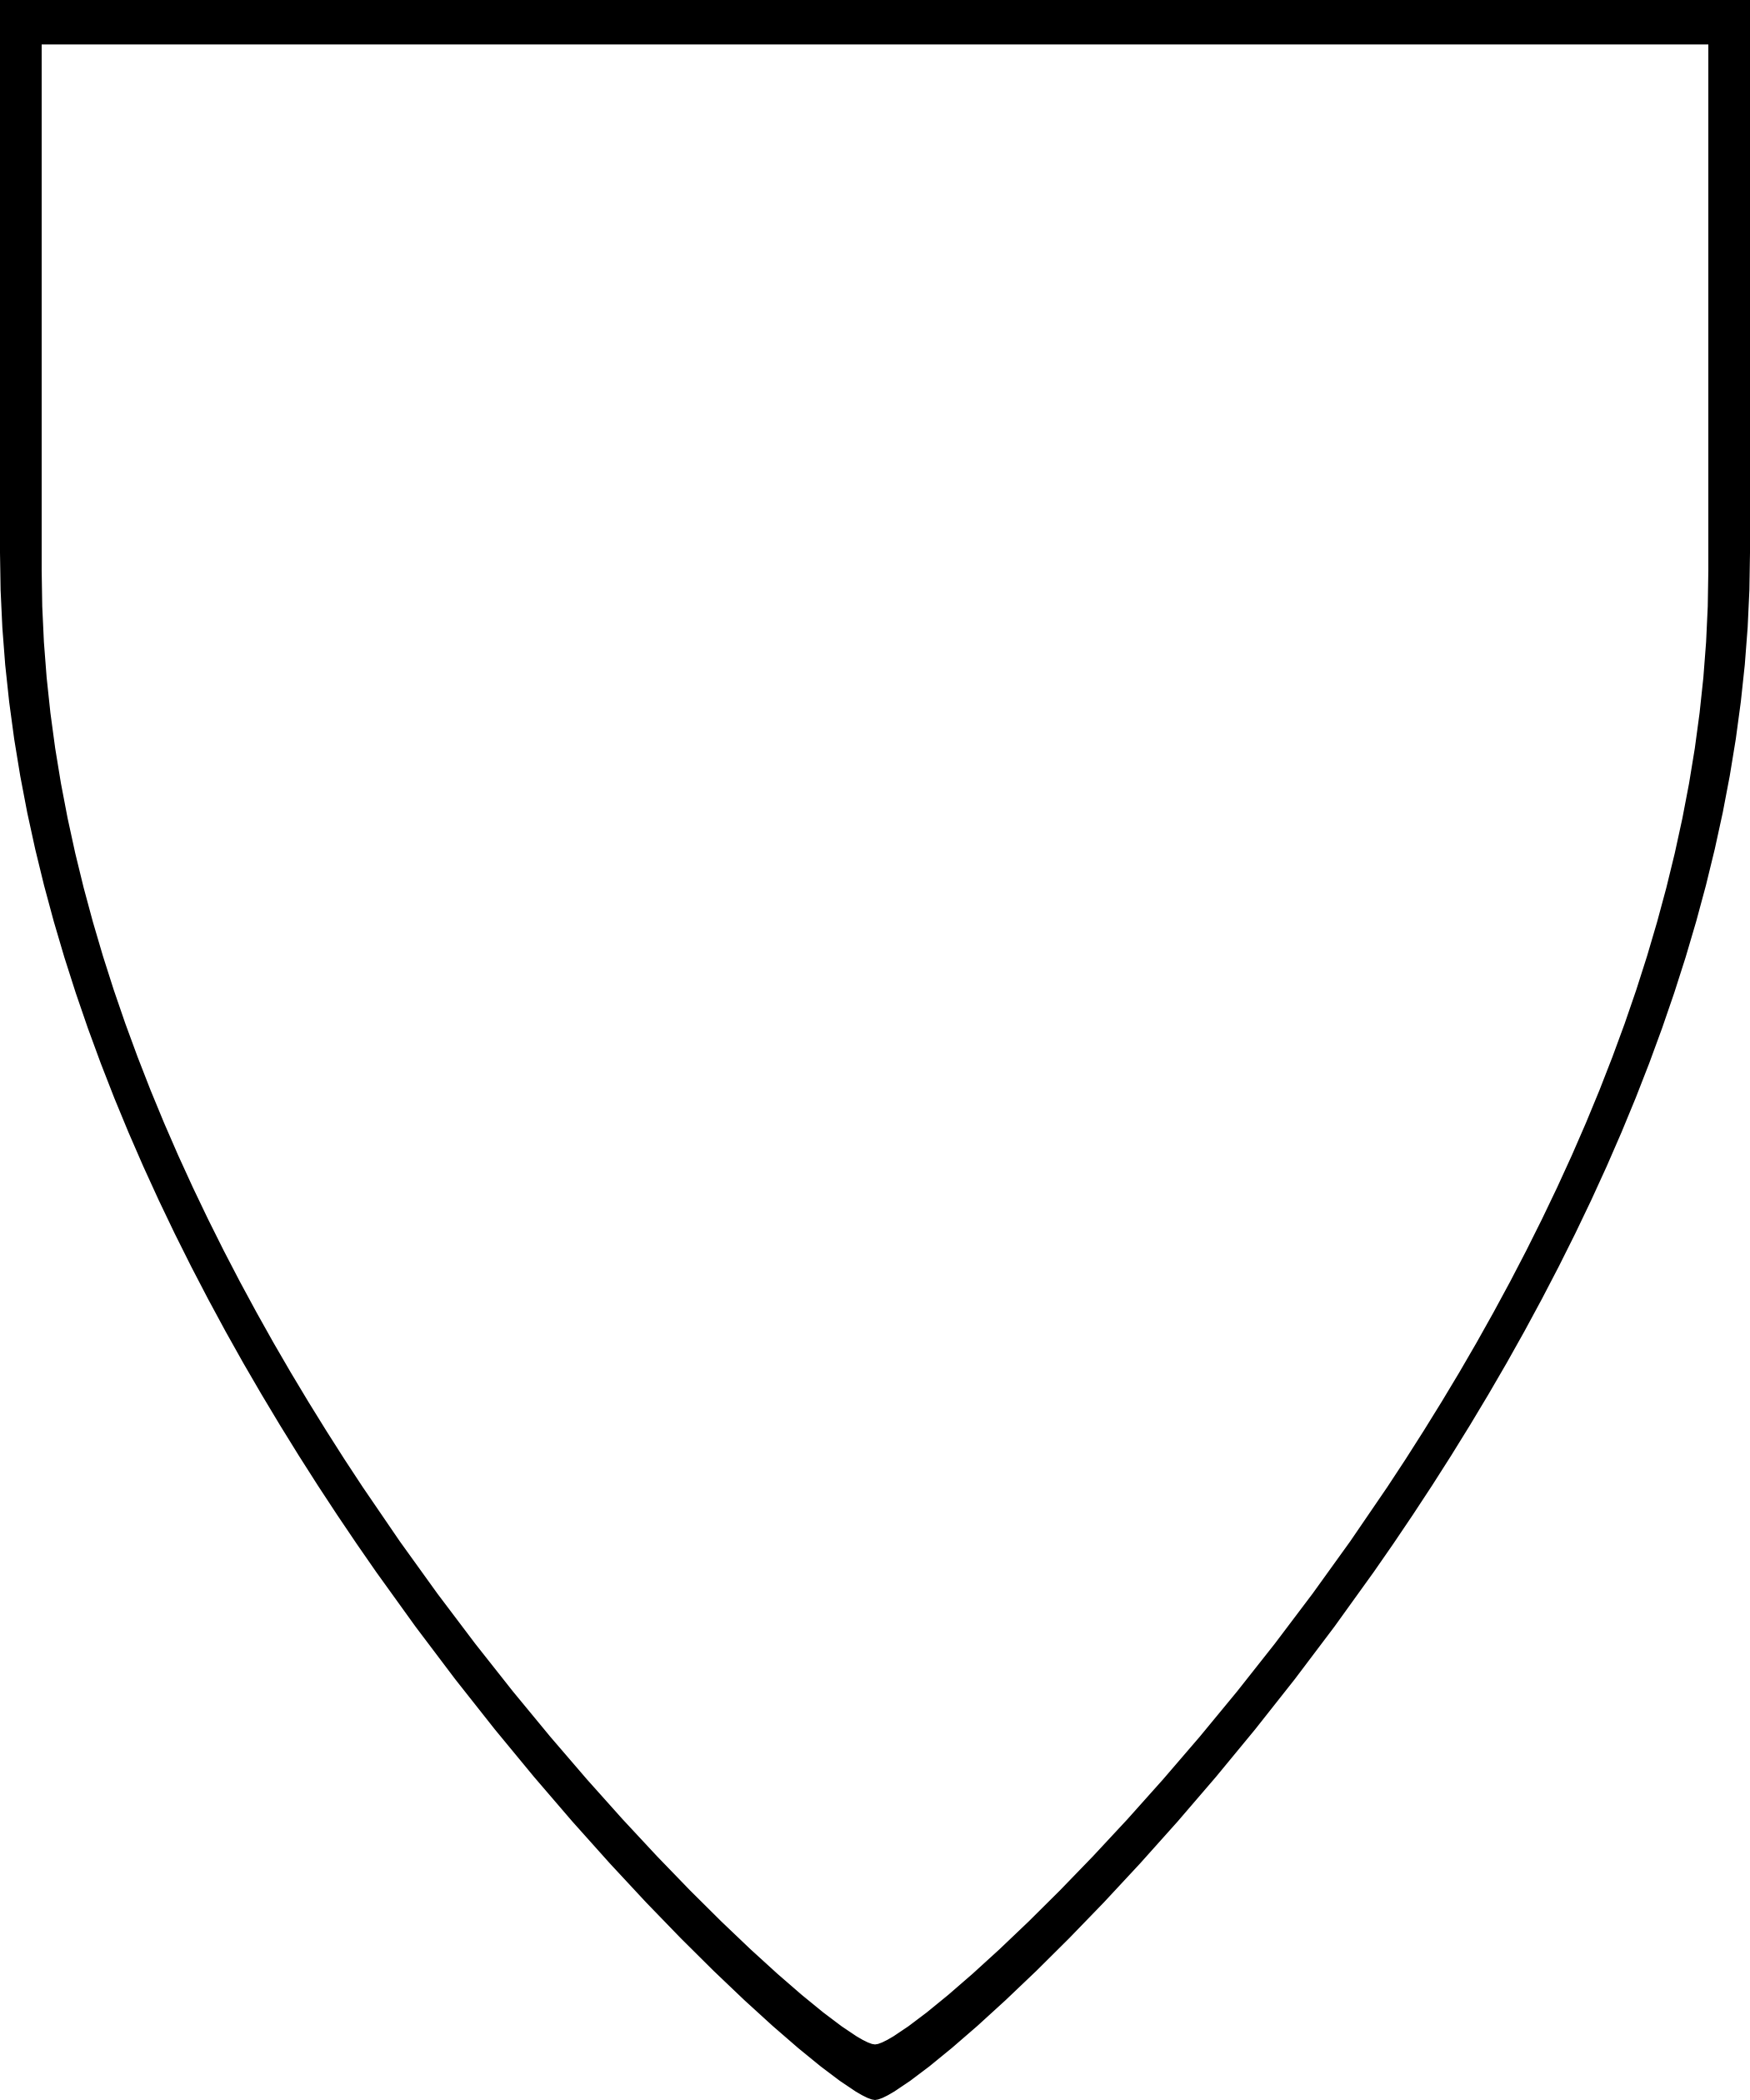 Crest outline png. Heater shield google search